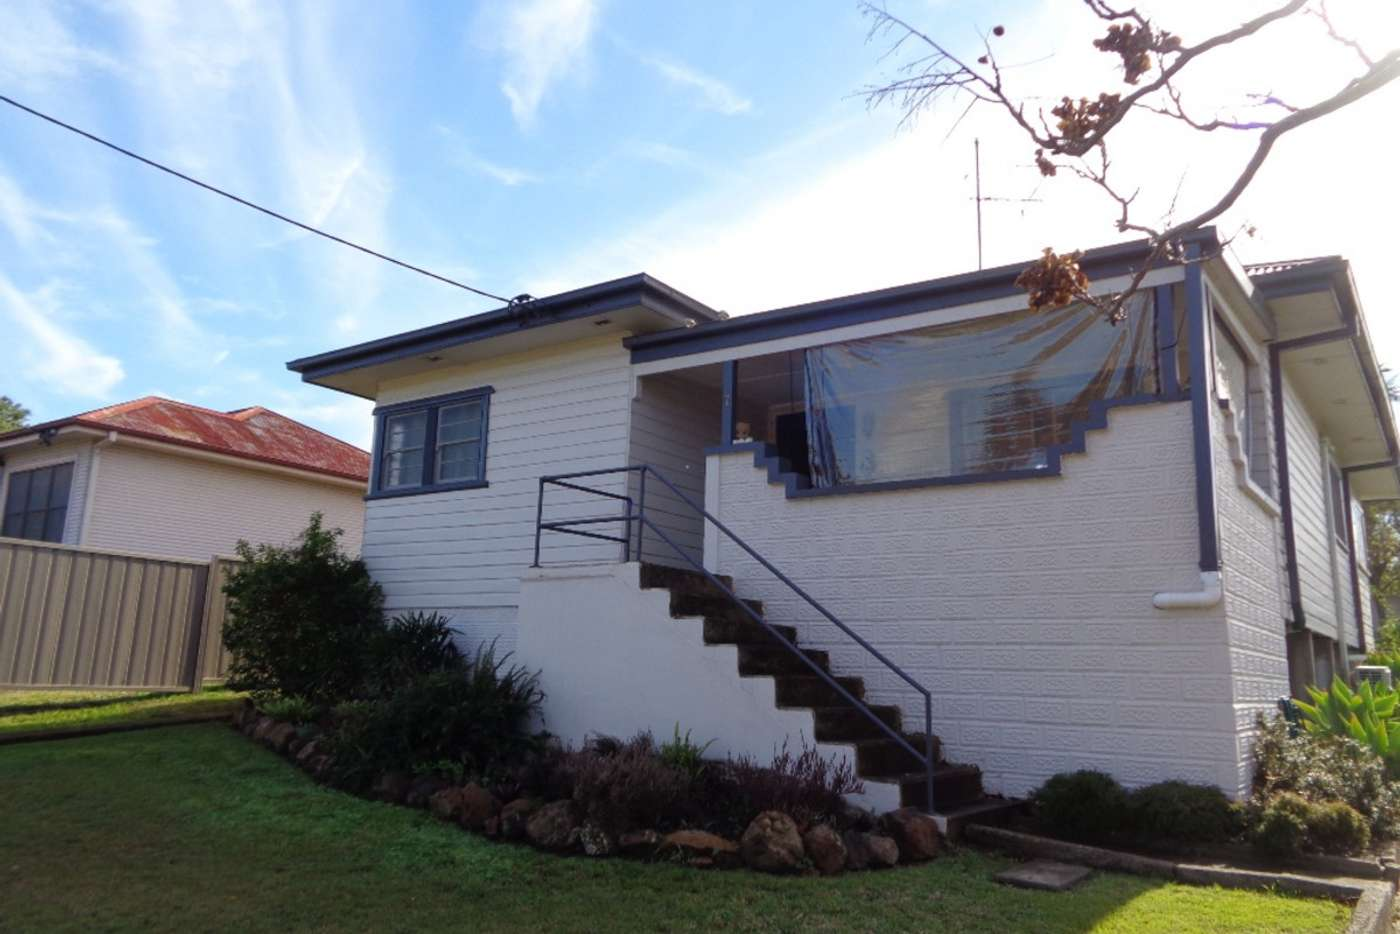 Main view of Homely house listing, 7 Mortimer Street, Wingham NSW 2429